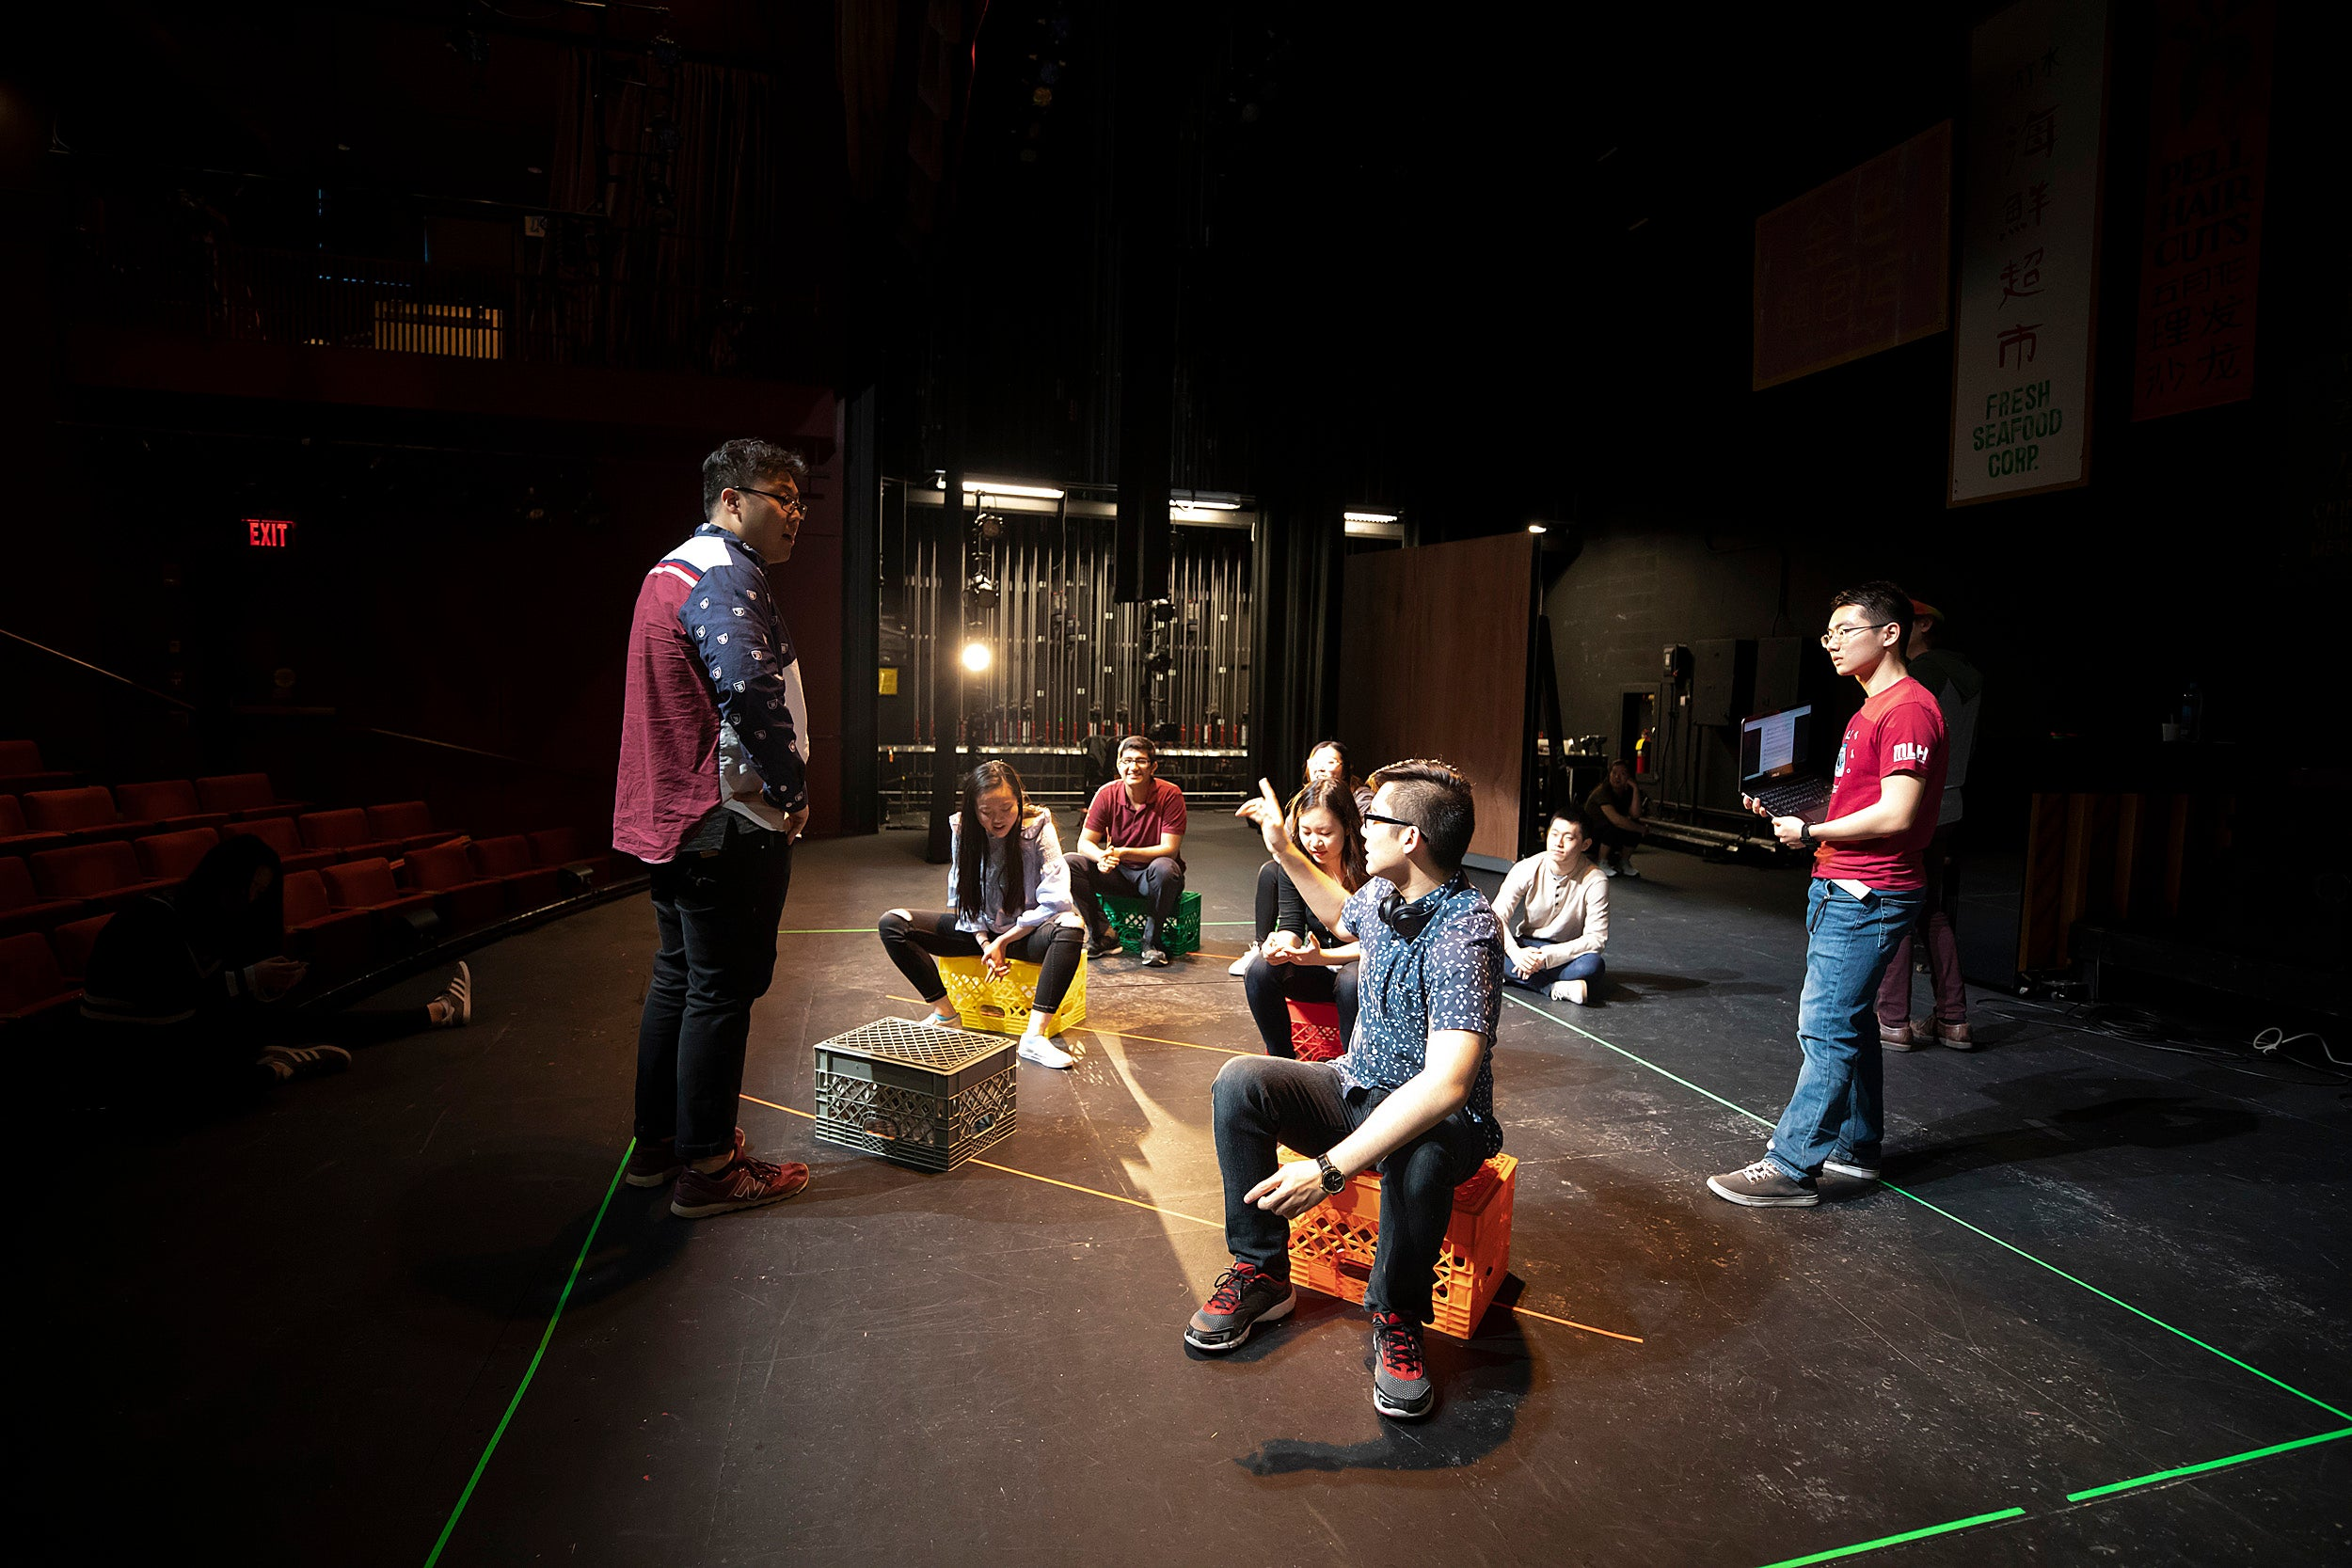 Performers sitting and talking on a stage